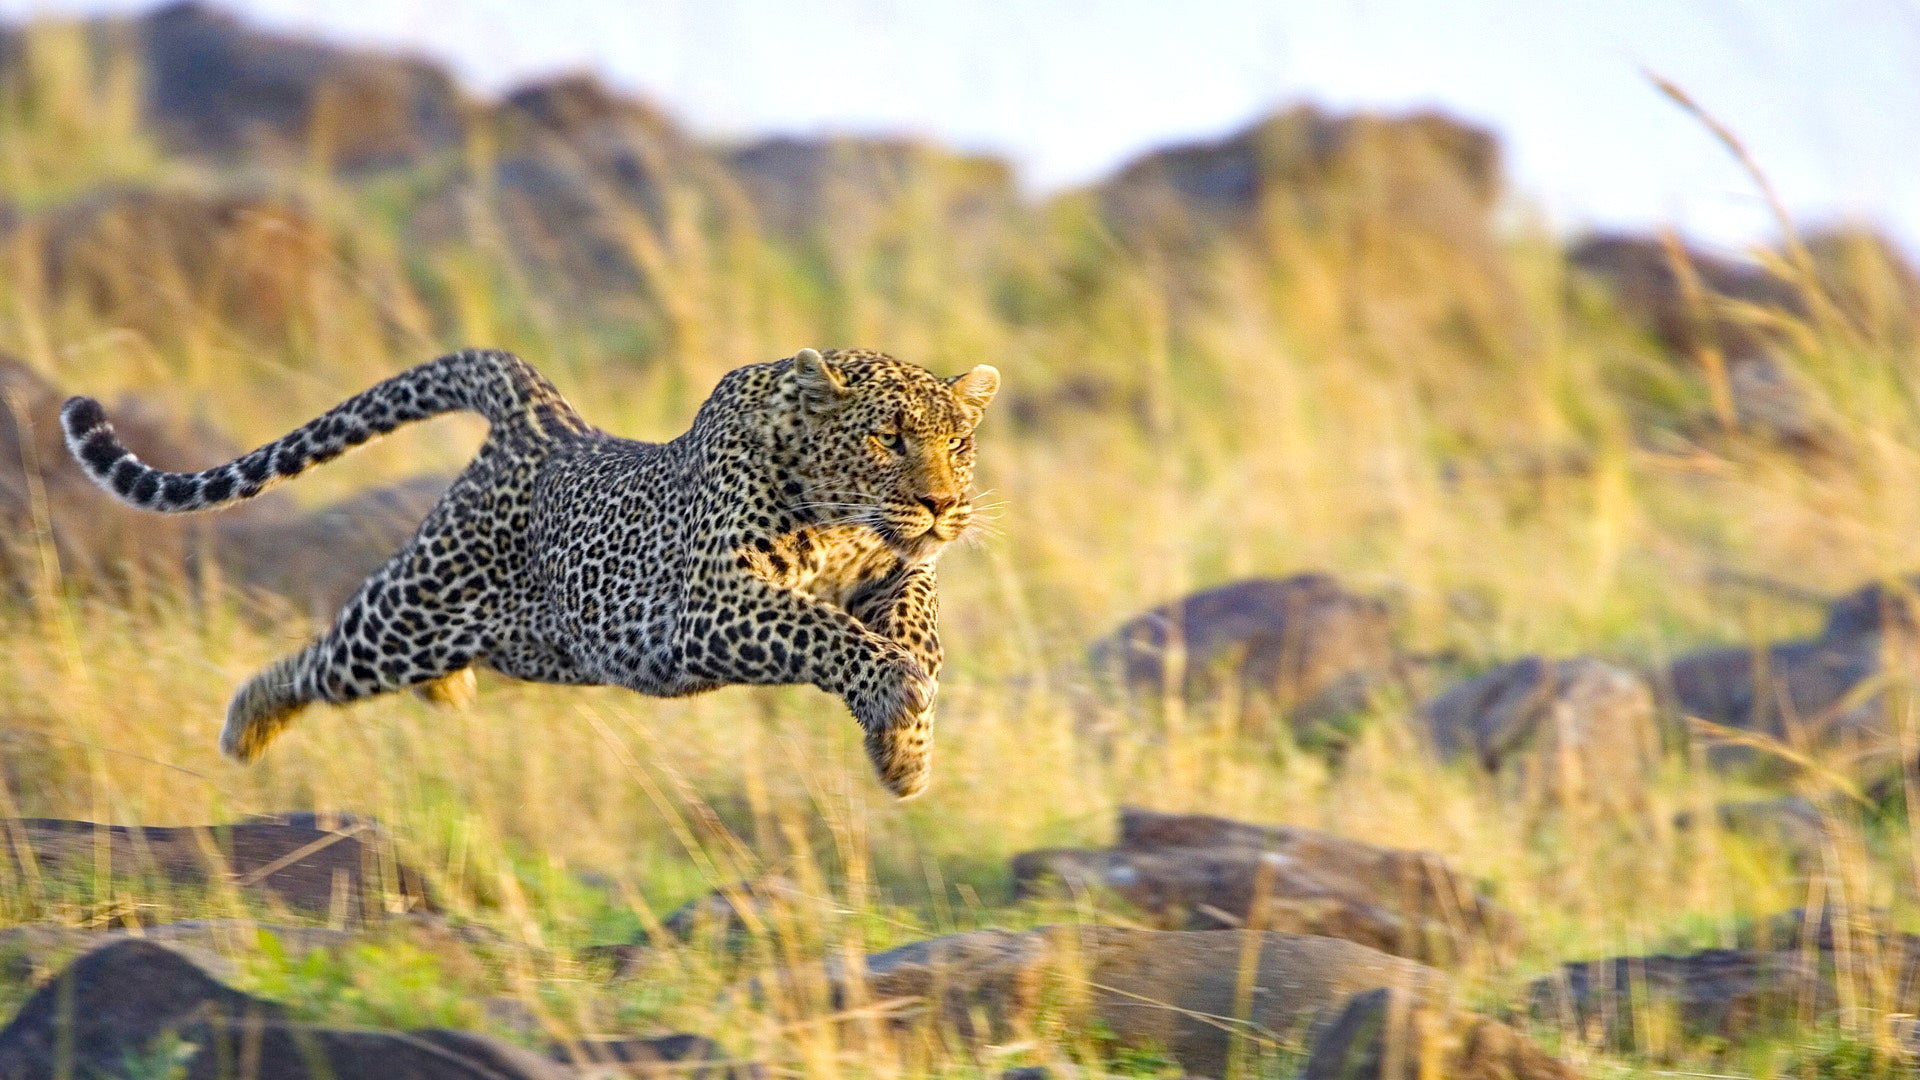 The Speed Of The Leopard Explained Why Are They So Fast Lprd